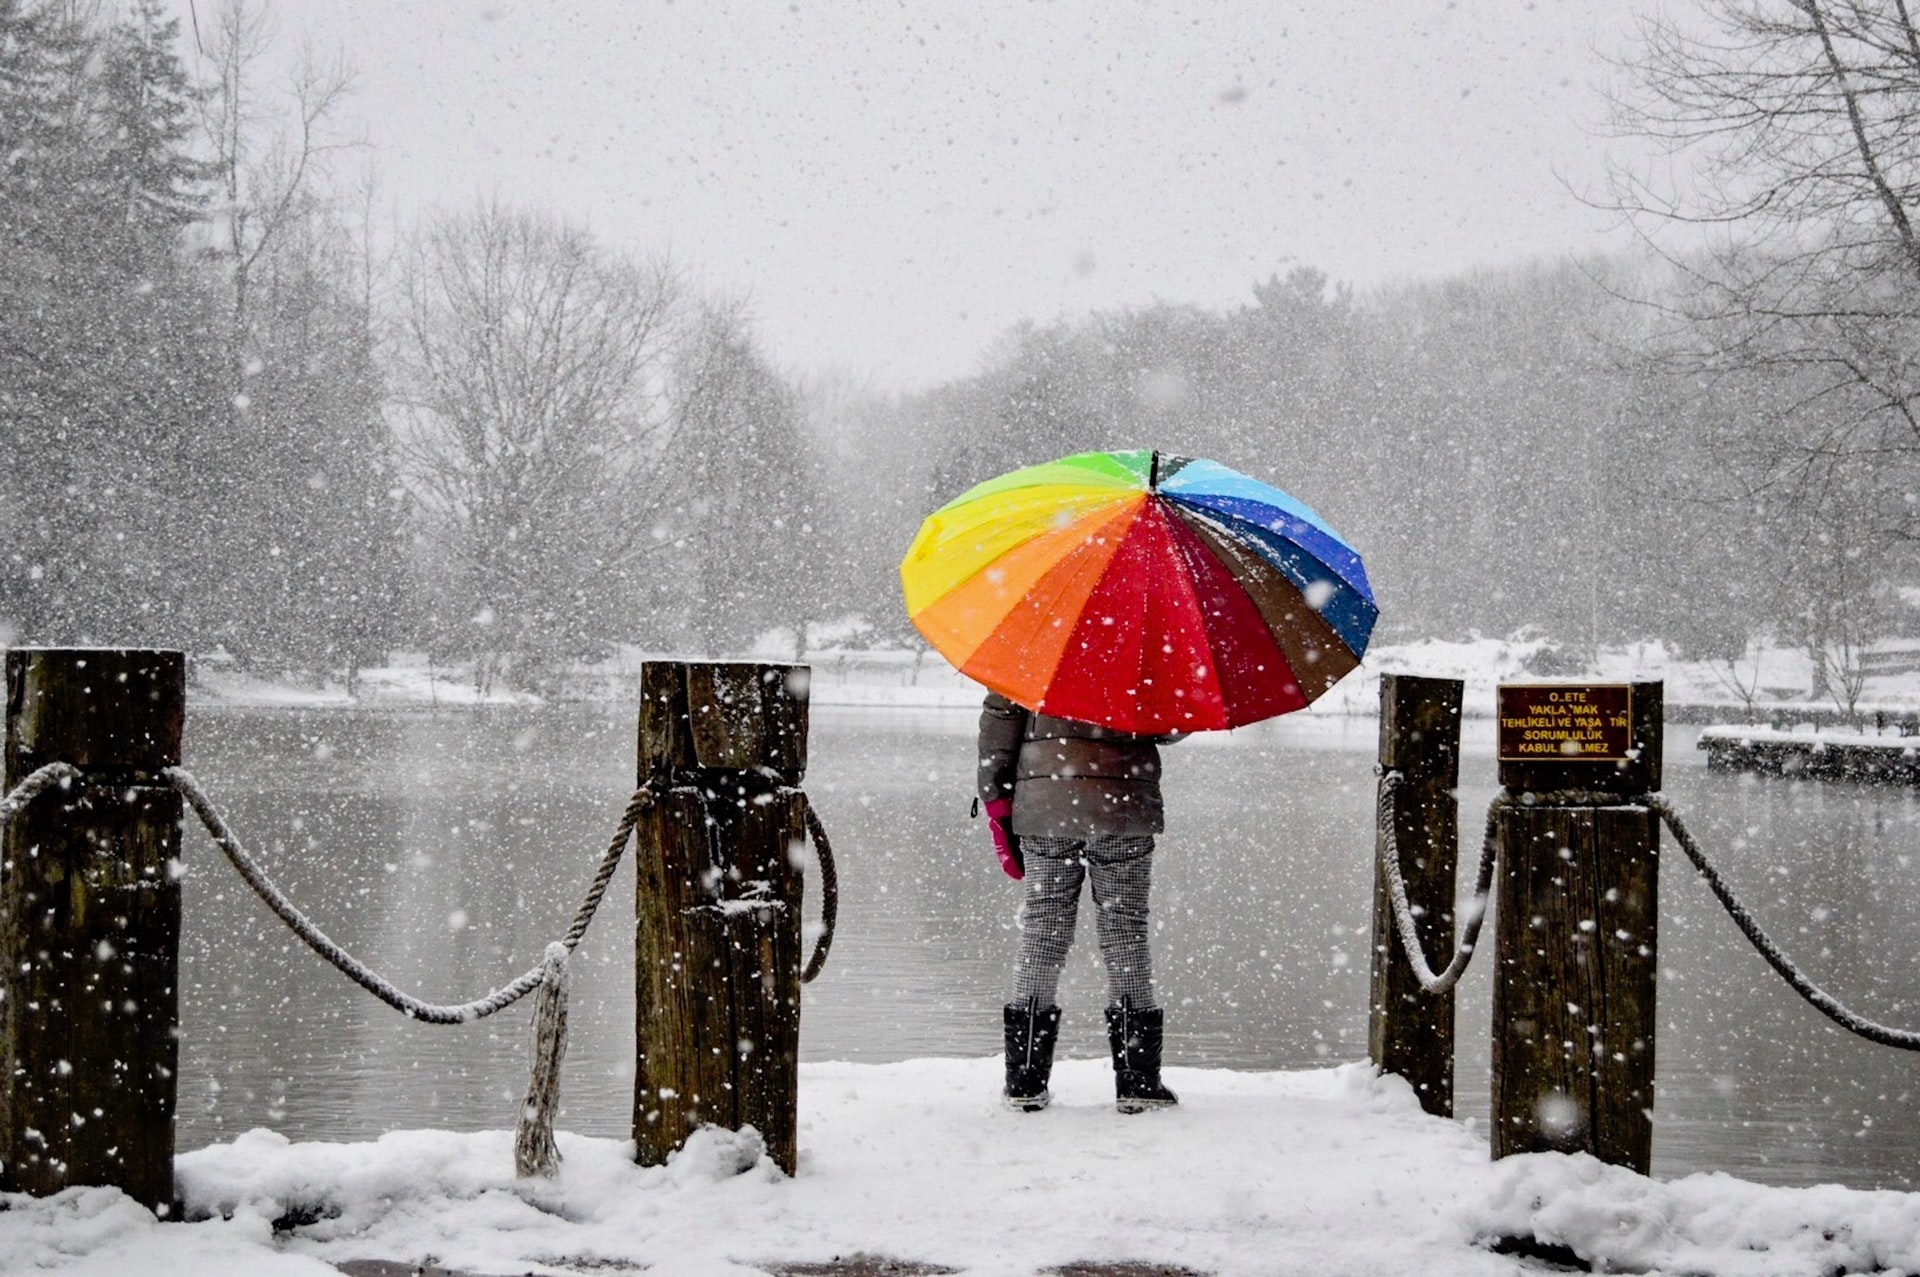 person standing in the snow with a colourful umbrella how to calm wedding day nerves celebrant angel Aberdeen